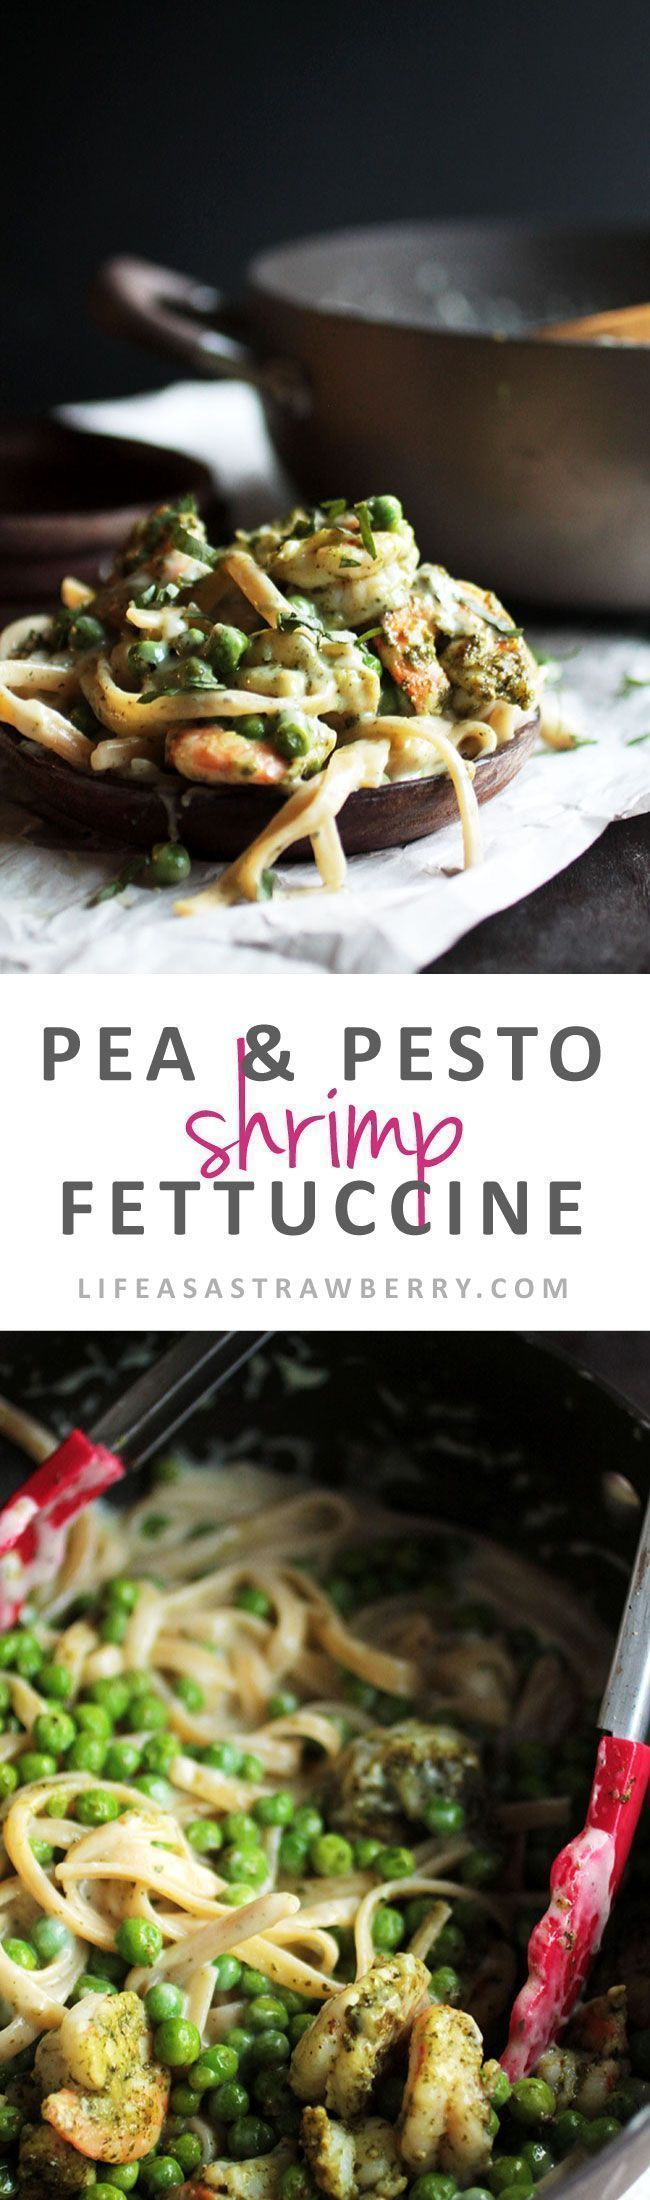 Pea and Pesto Shrimp Fettuccine - Put a fun spin on a classic fettuccine Alfredo... -  - #Genel #shrimpfettuccine Pea and Pesto Shrimp Fettuccine - Put a fun spin on a classic fettuccine Alfredo... -  - #Genel #shrimpfettuccine Pea and Pesto Shrimp Fettuccine - Put a fun spin on a classic fettuccine Alfredo... -  - #Genel #shrimpfettuccine Pea and Pesto Shrimp Fettuccine - Put a fun spin on a classic fettuccine Alfredo... -  - #Genel #shrimpfettuccine Pea and Pesto Shrimp Fettuccine - Put a fun #shrimpfettuccine